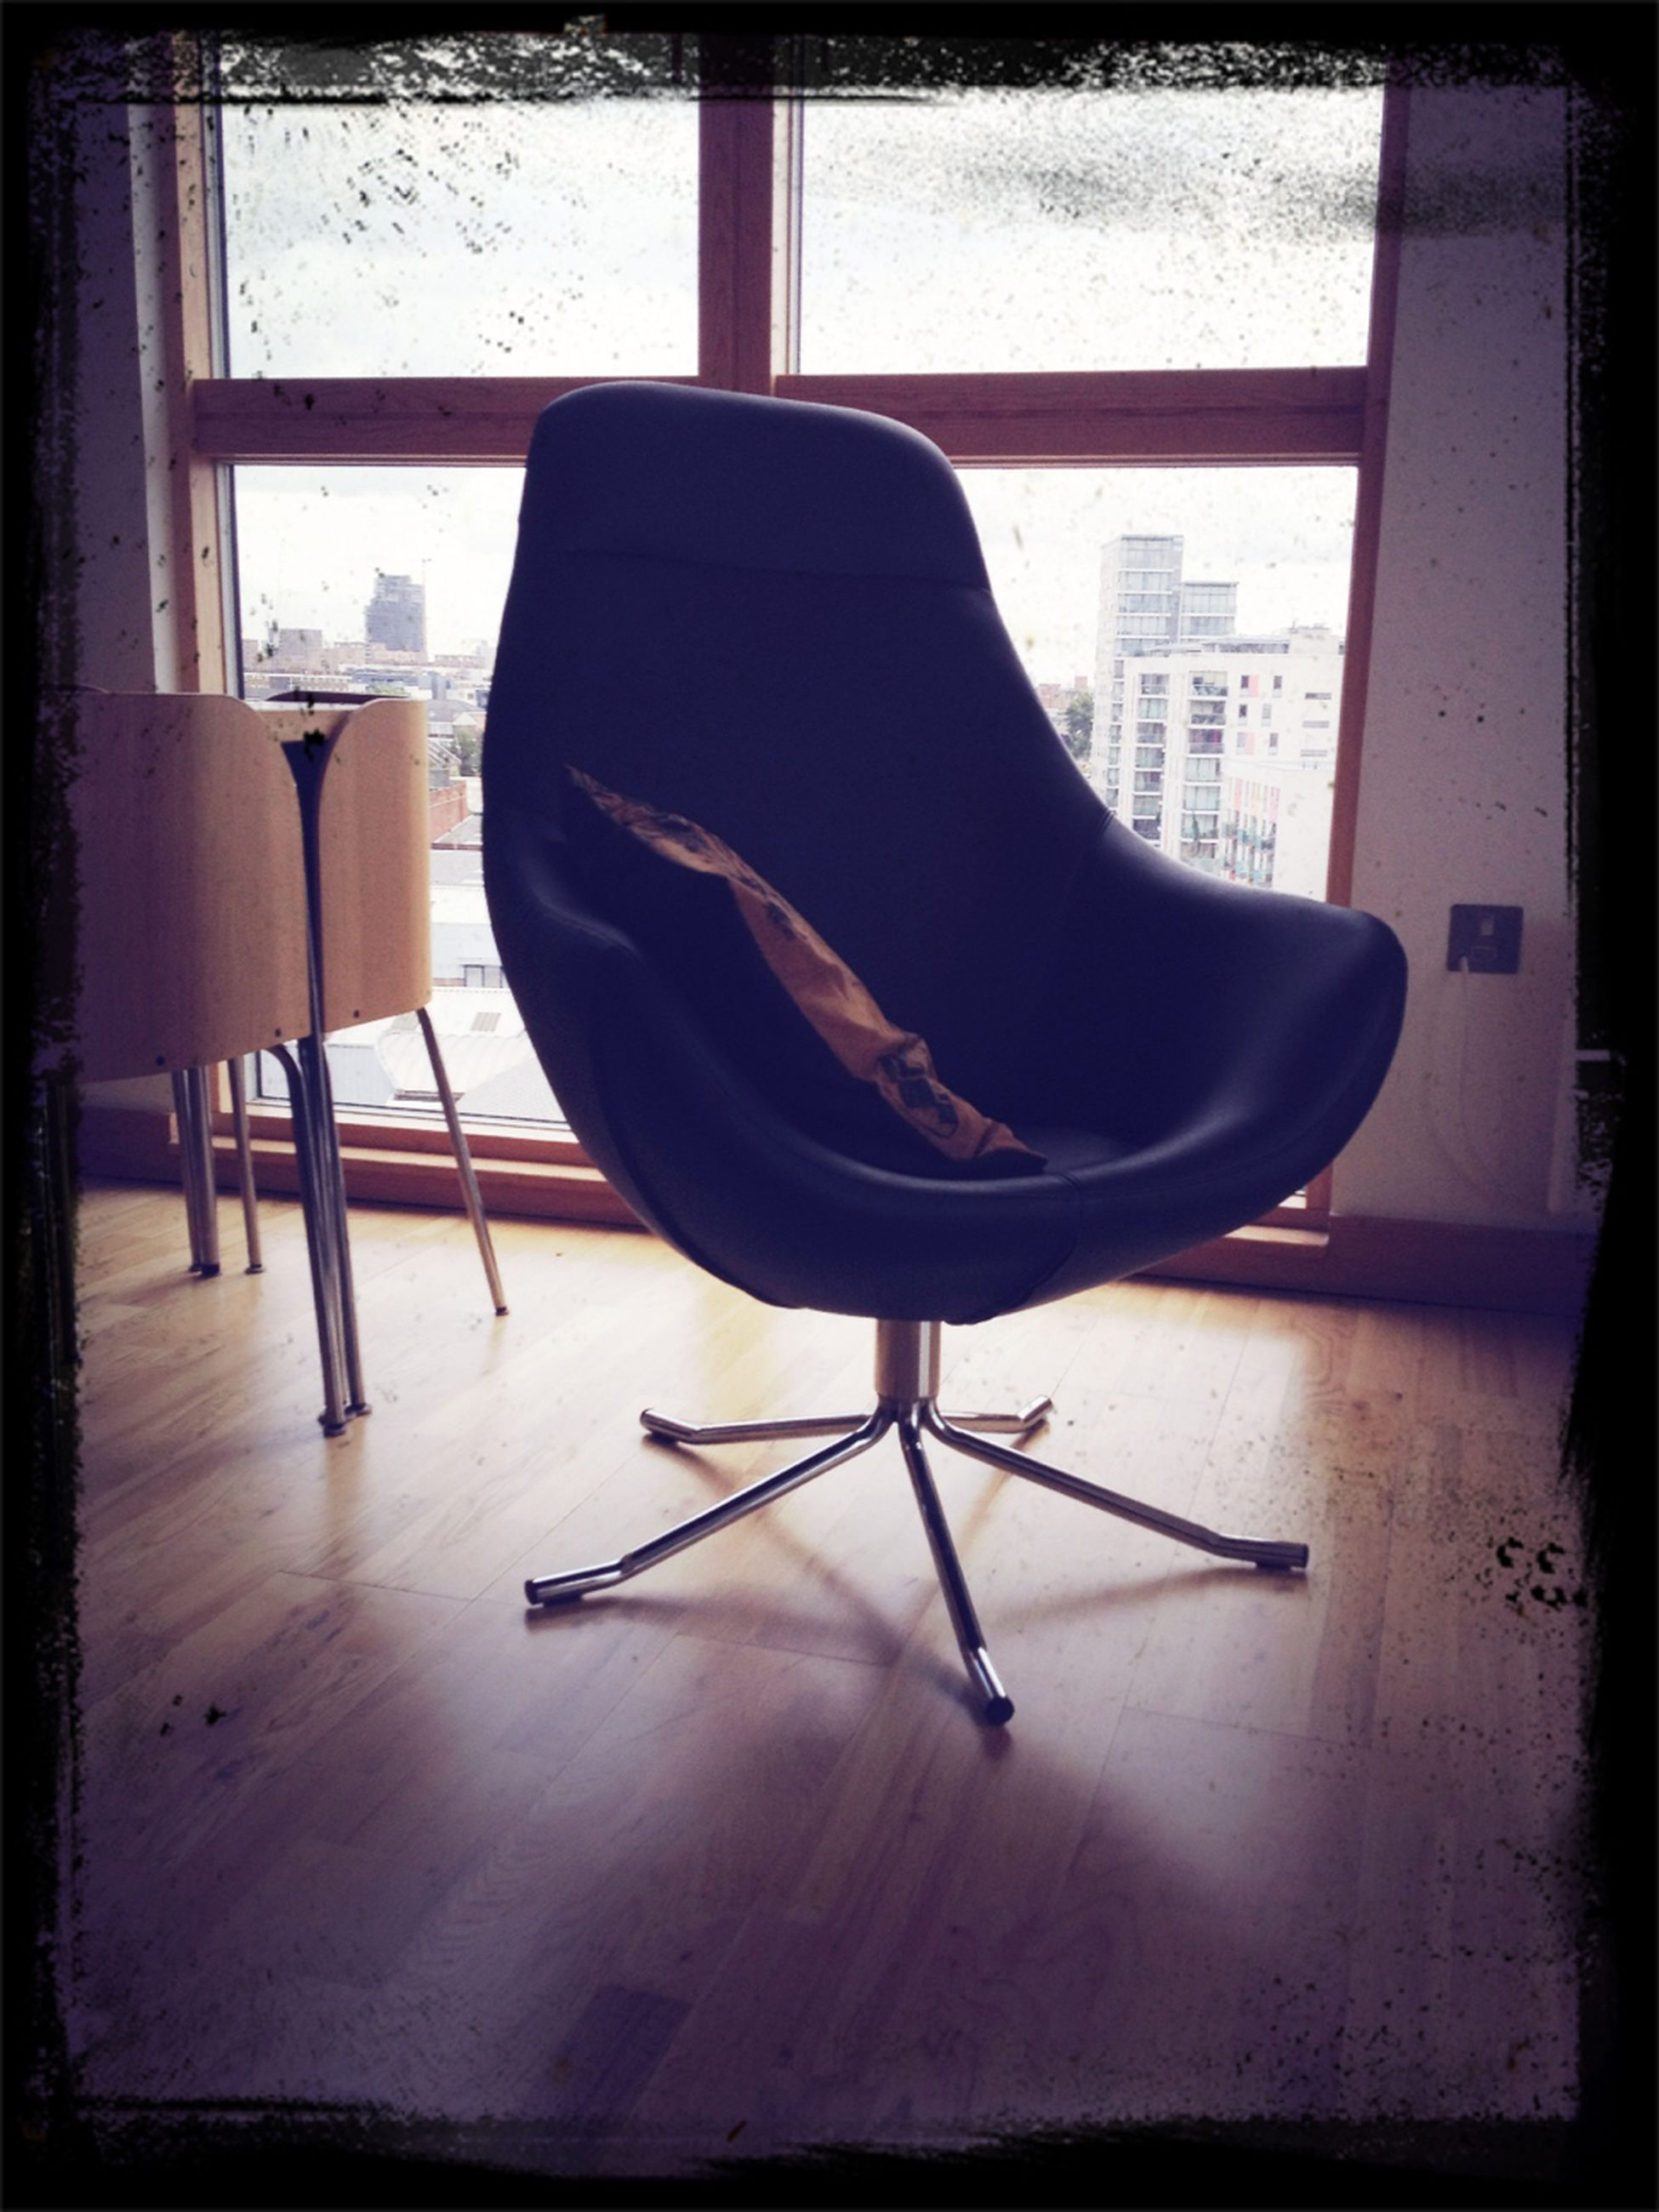 indoors, chair, home interior, window, sitting, relaxation, table, domestic room, absence, empty, transfer print, sofa, living room, domestic life, furniture, auto post production filter, flooring, one person, bed, full length